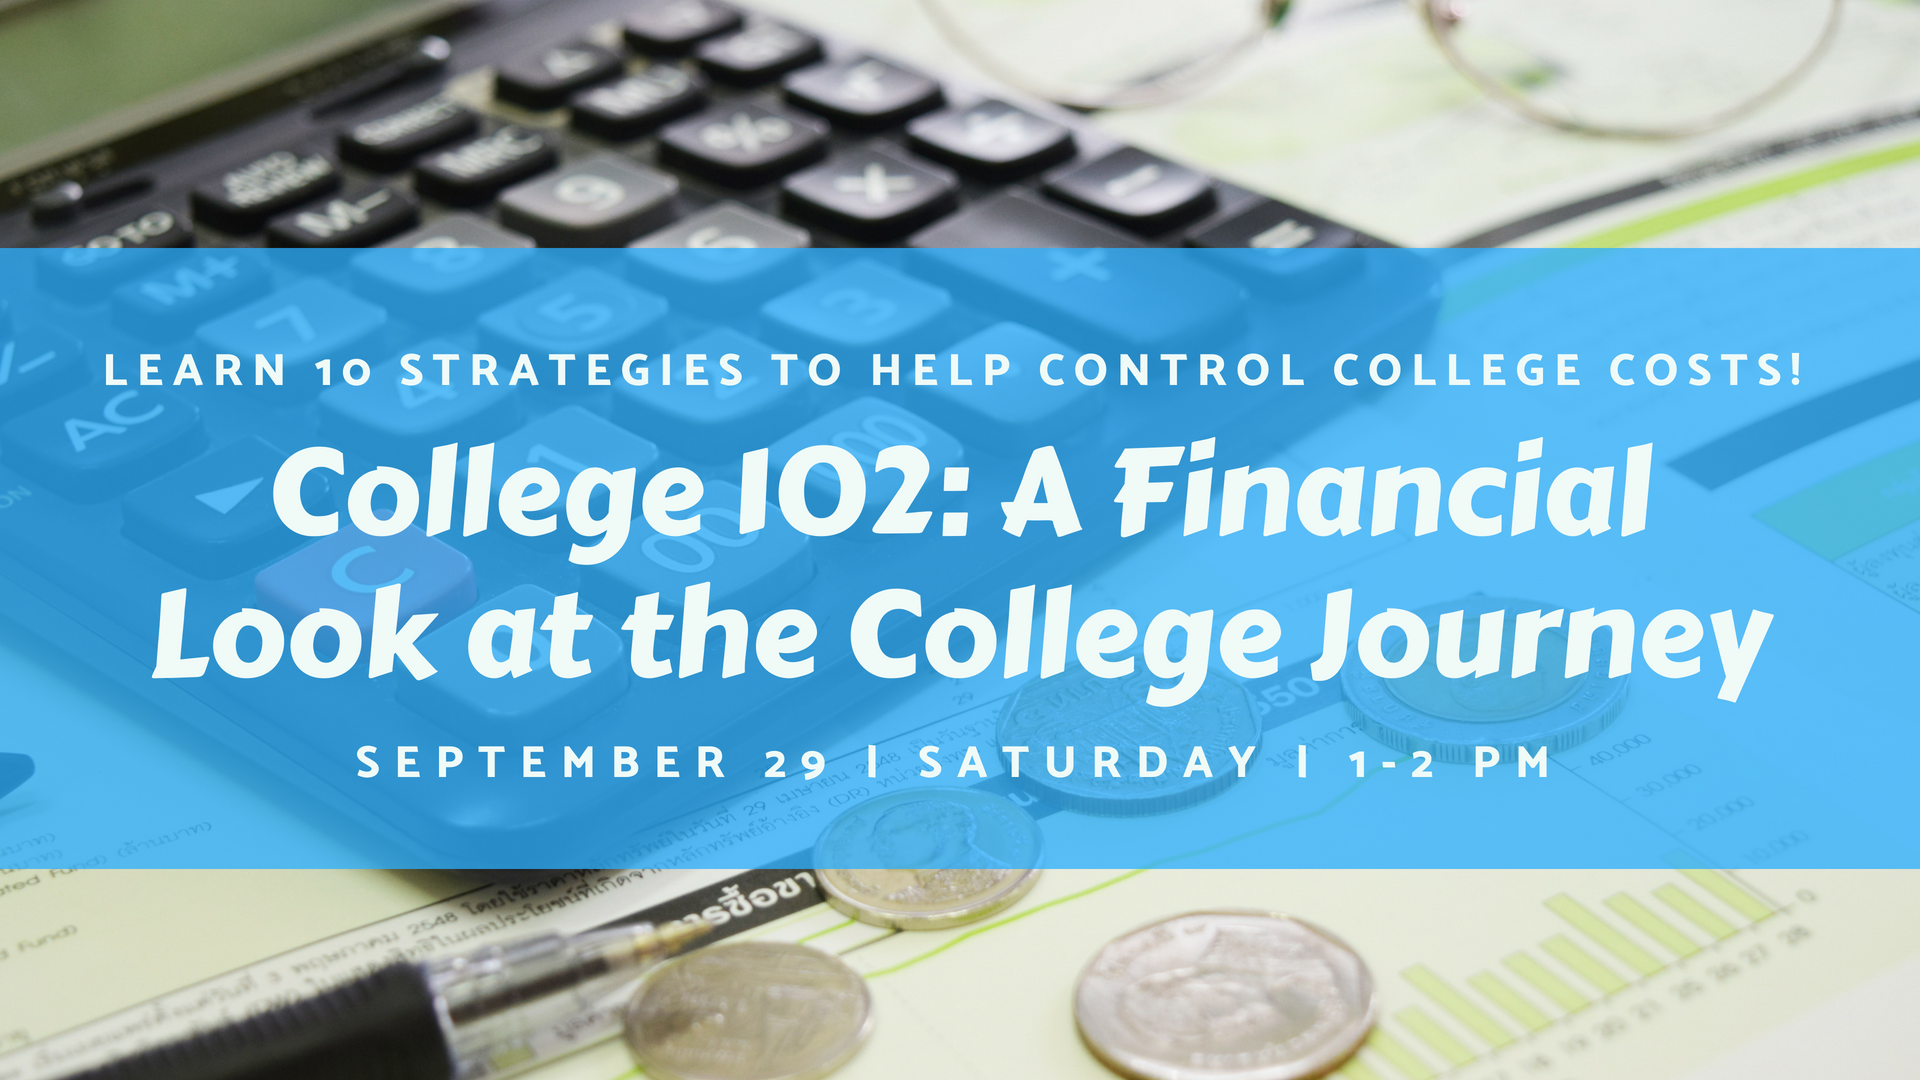 College 102: A Financial Look at the College Journey